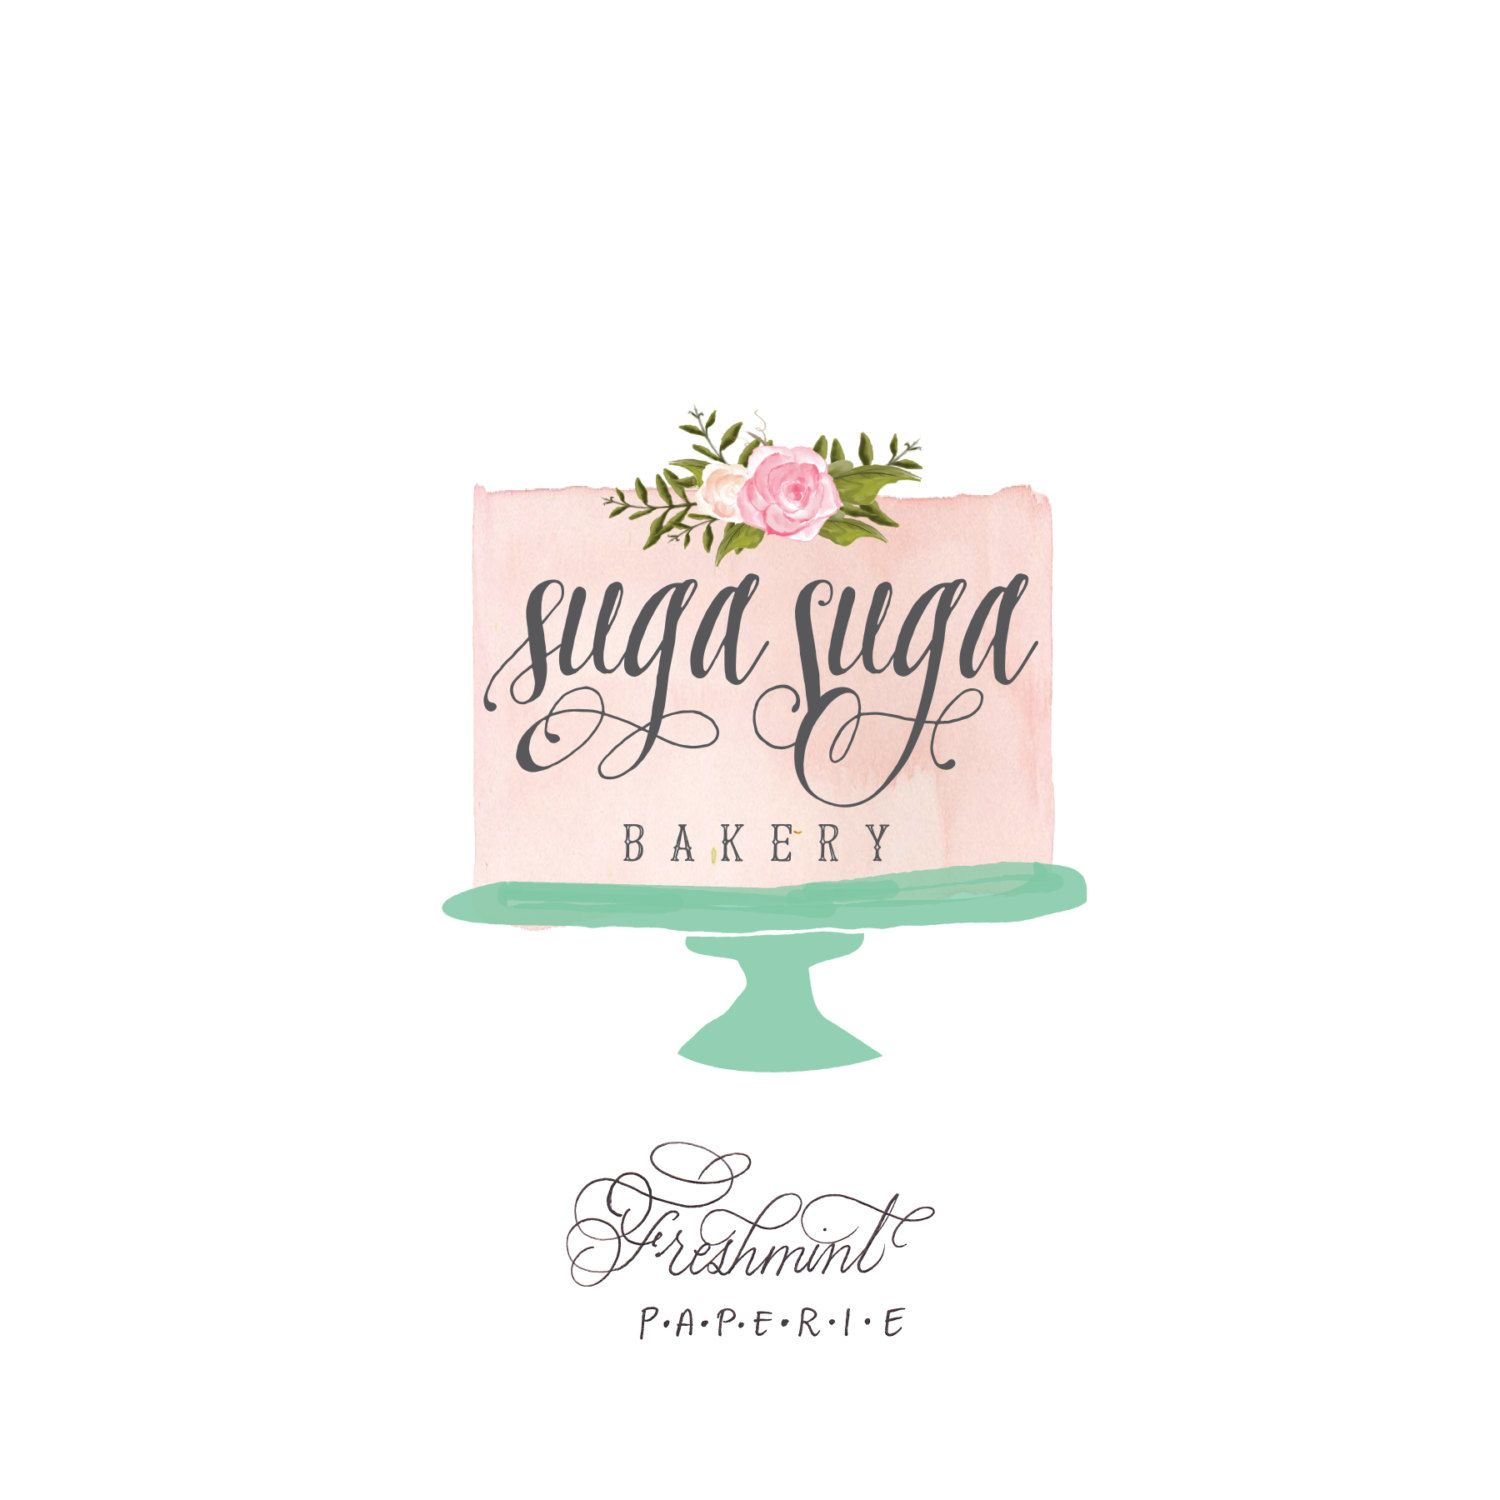 Cake Company Logo Design : cake company watercolour logo - Google Search ...